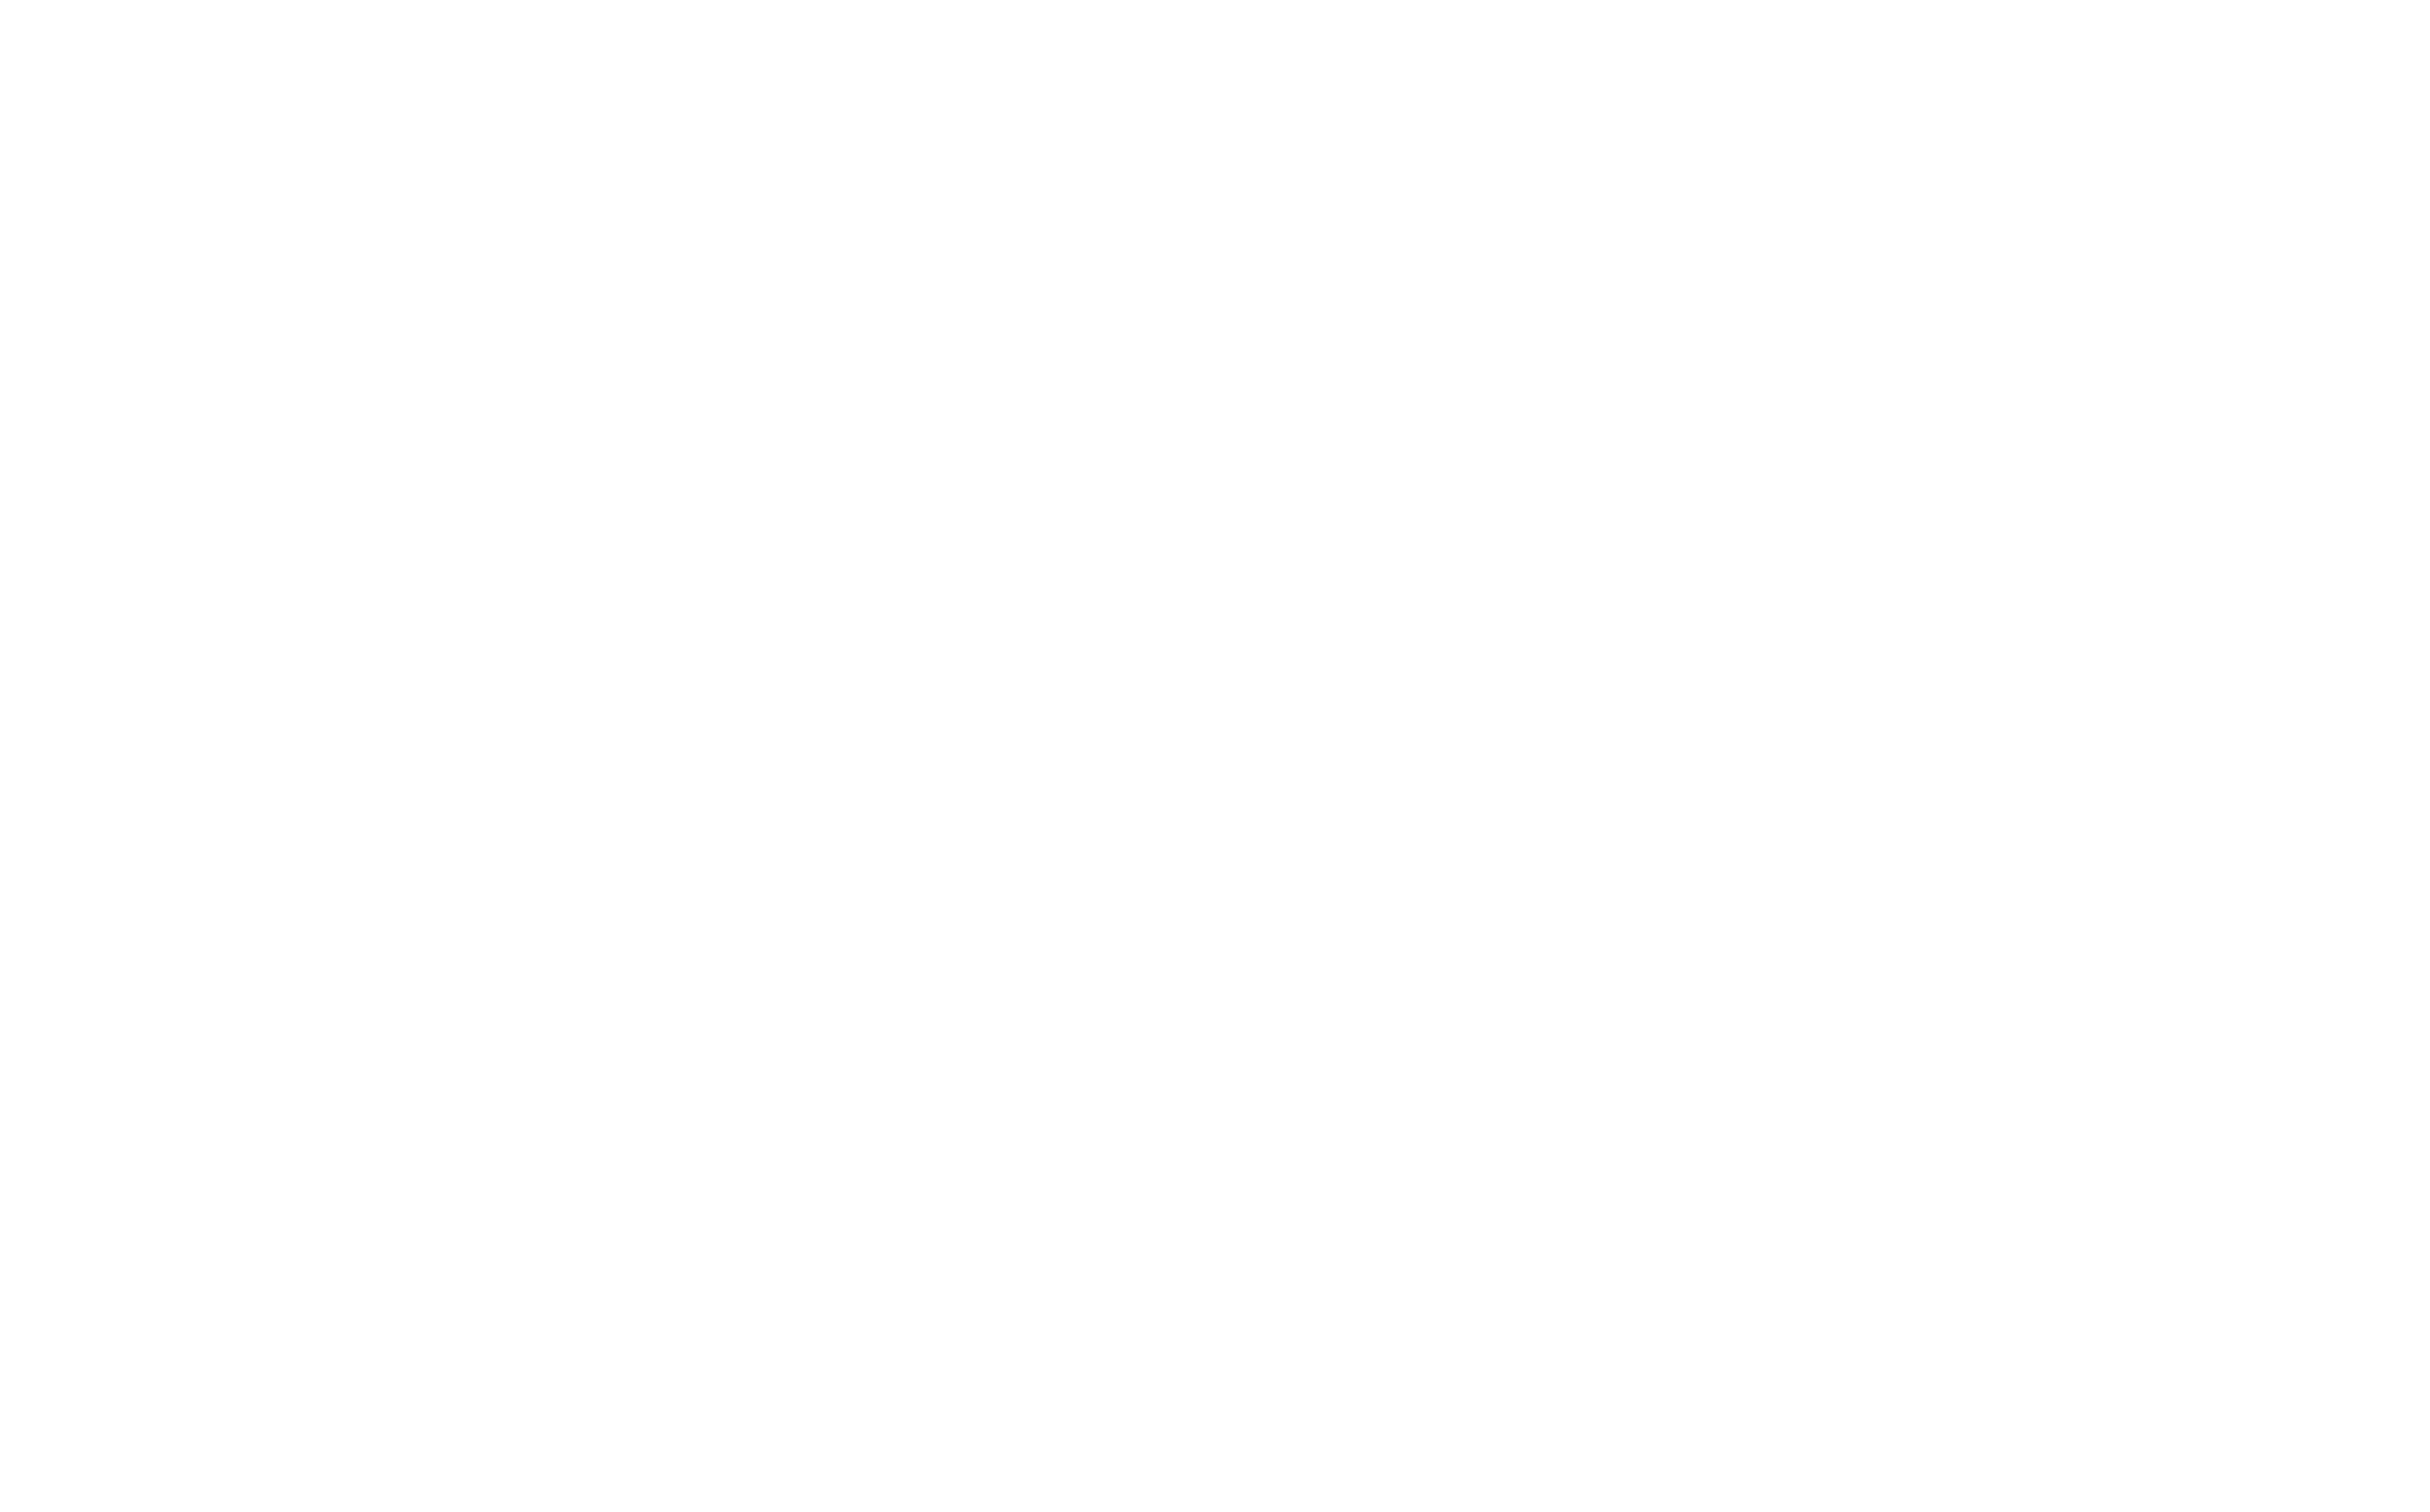 https://hi-space.ru/wp-content/uploads/2020/11/new_logo_1.png